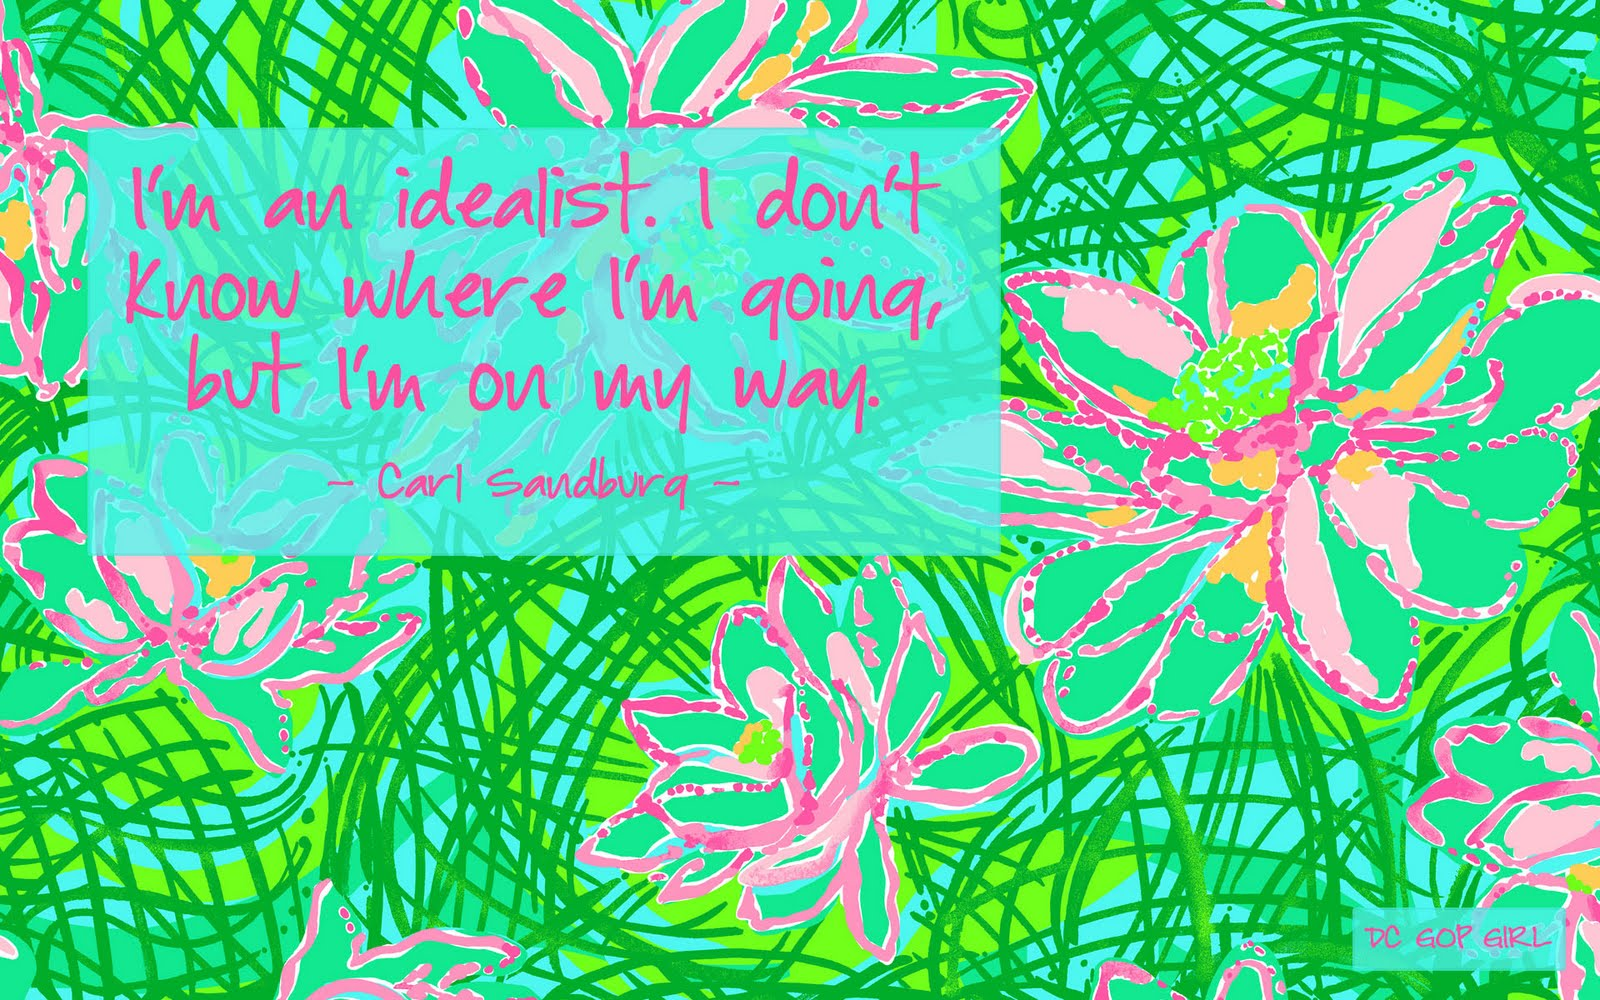 Lilly Pulitzer Quotes Wallpaper QuotesGram 1600x1000